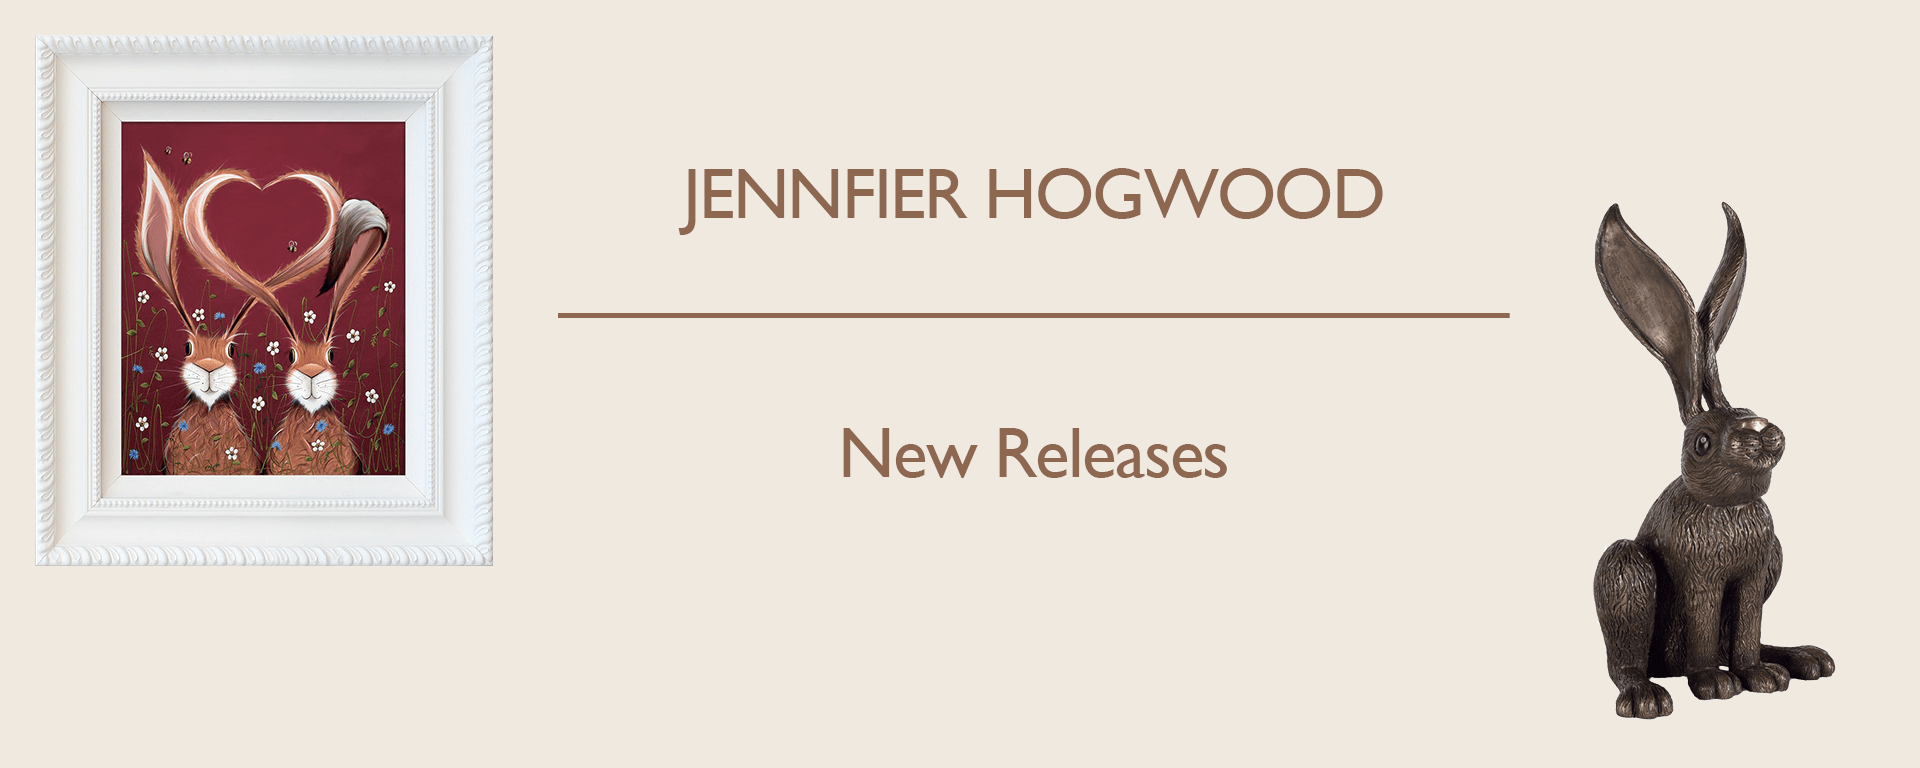 Jennifer Hogwood | New Releases